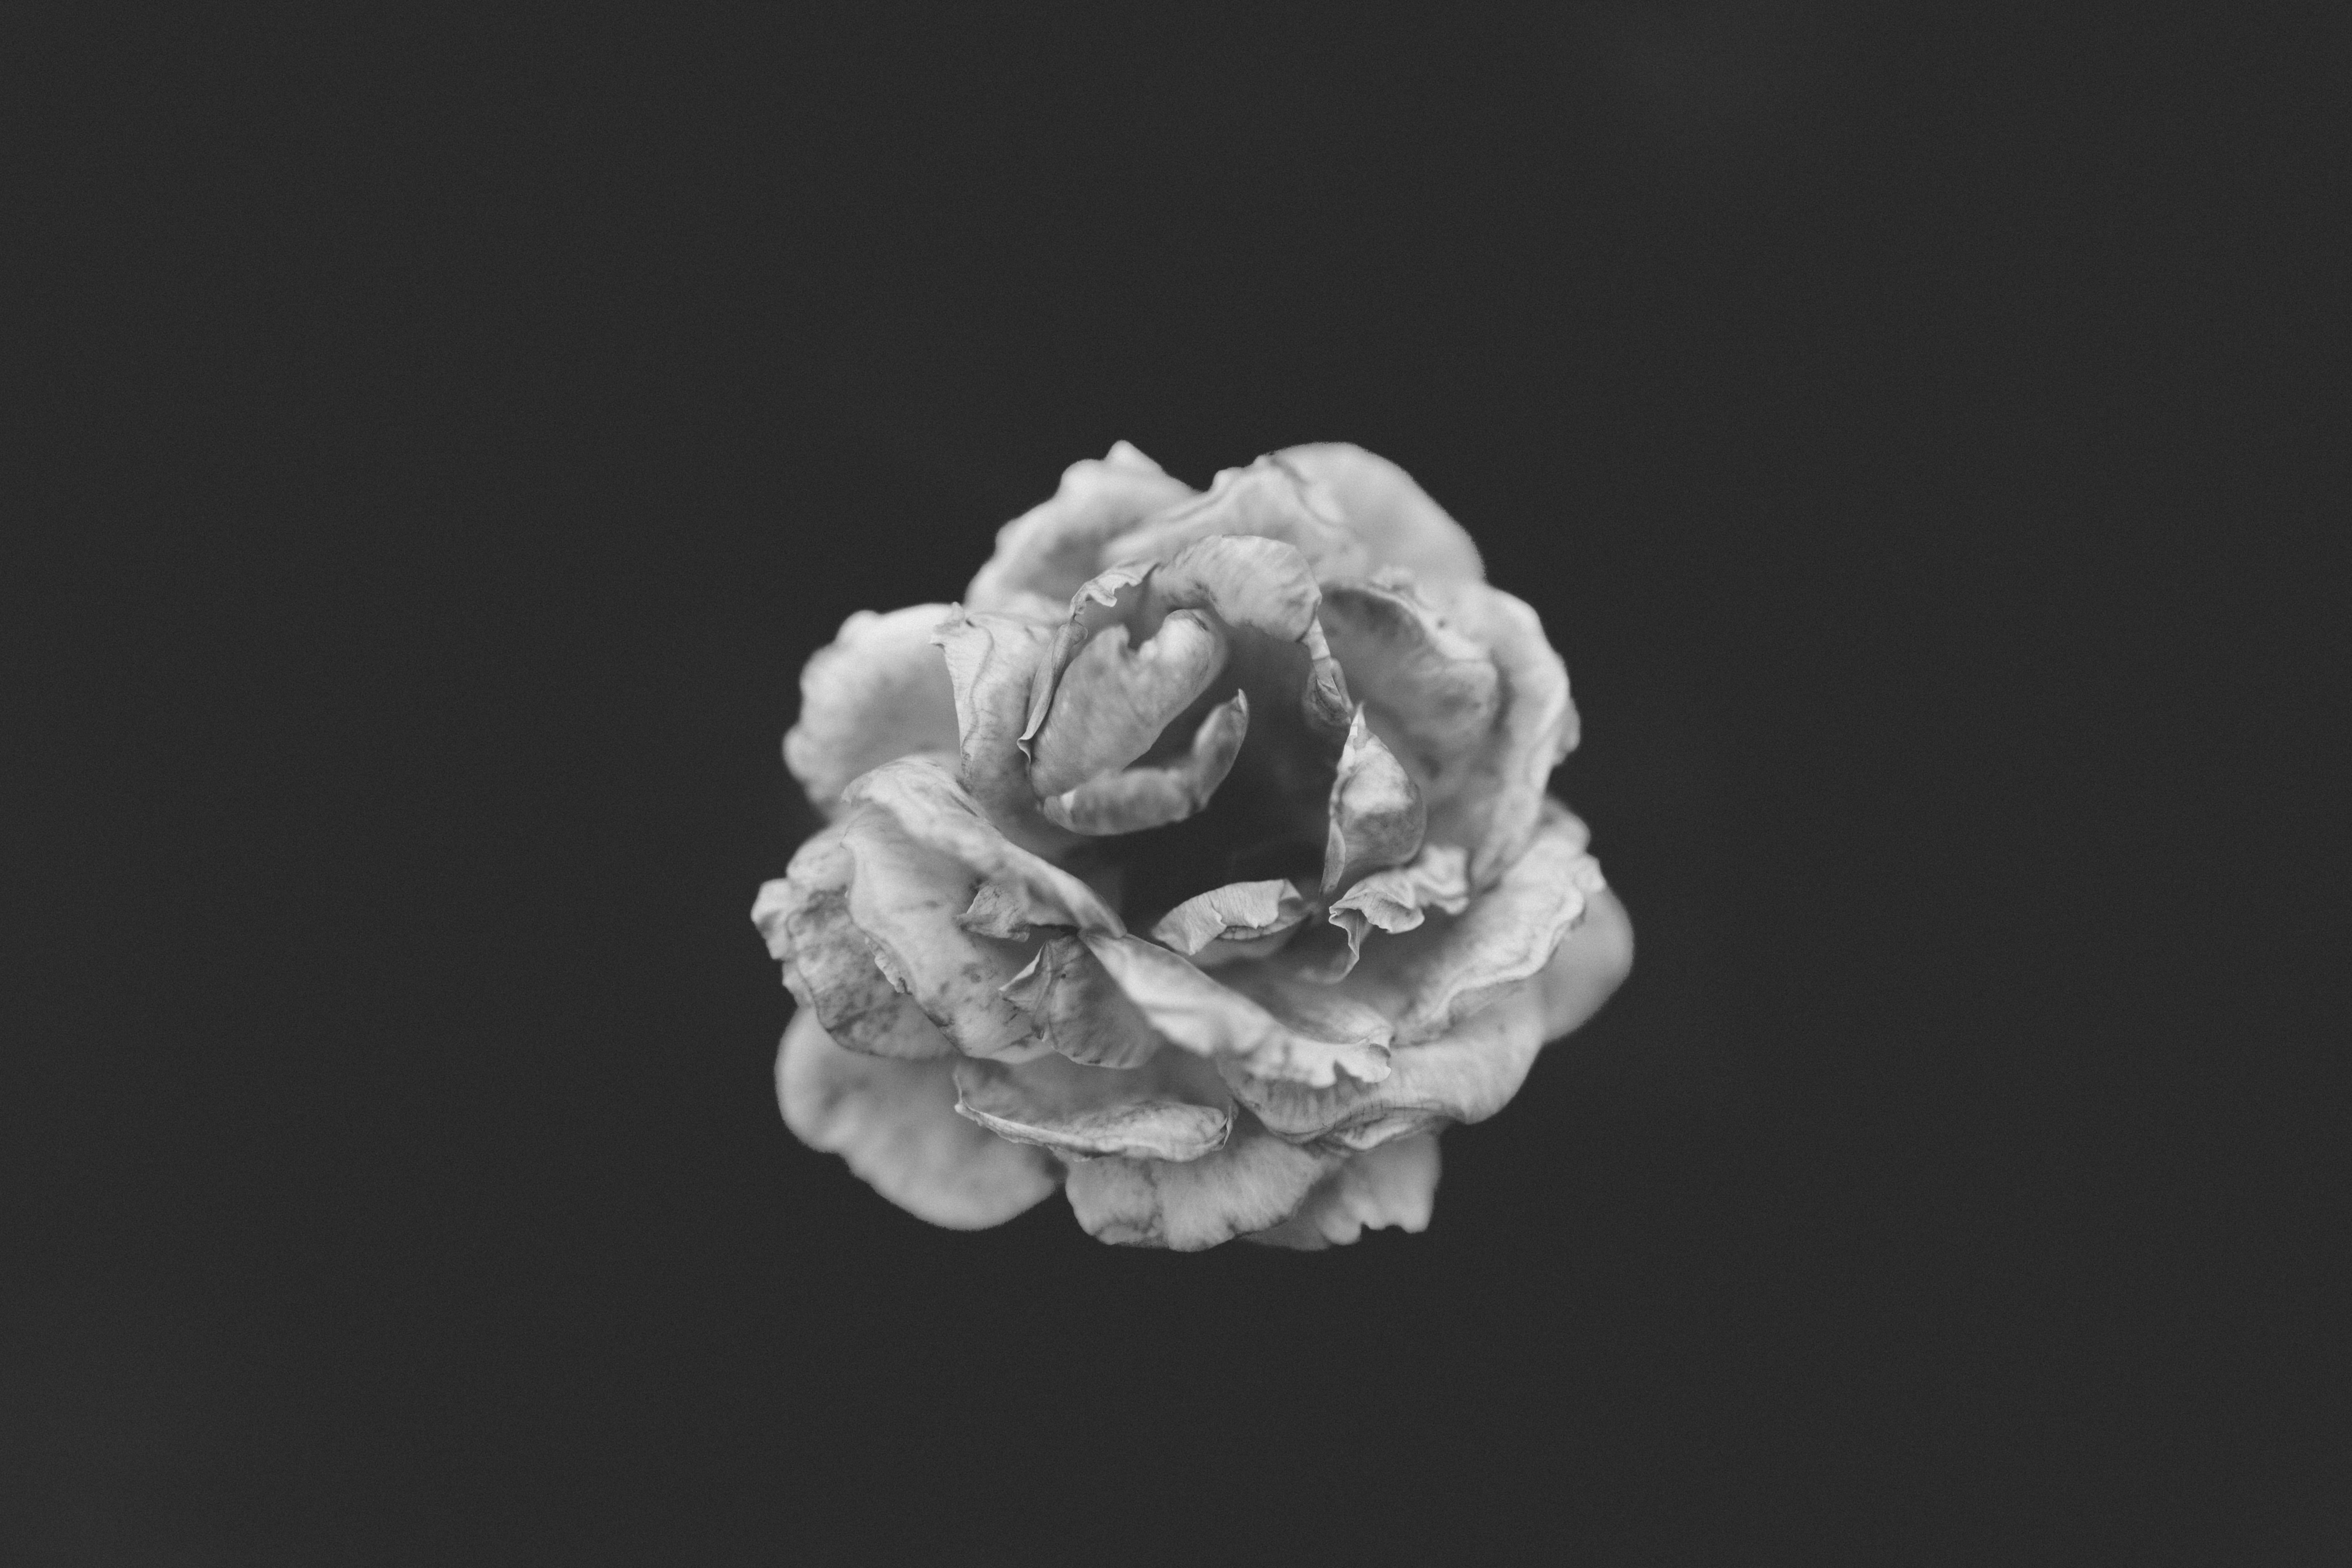 A black-and-white shot of a wilting rose